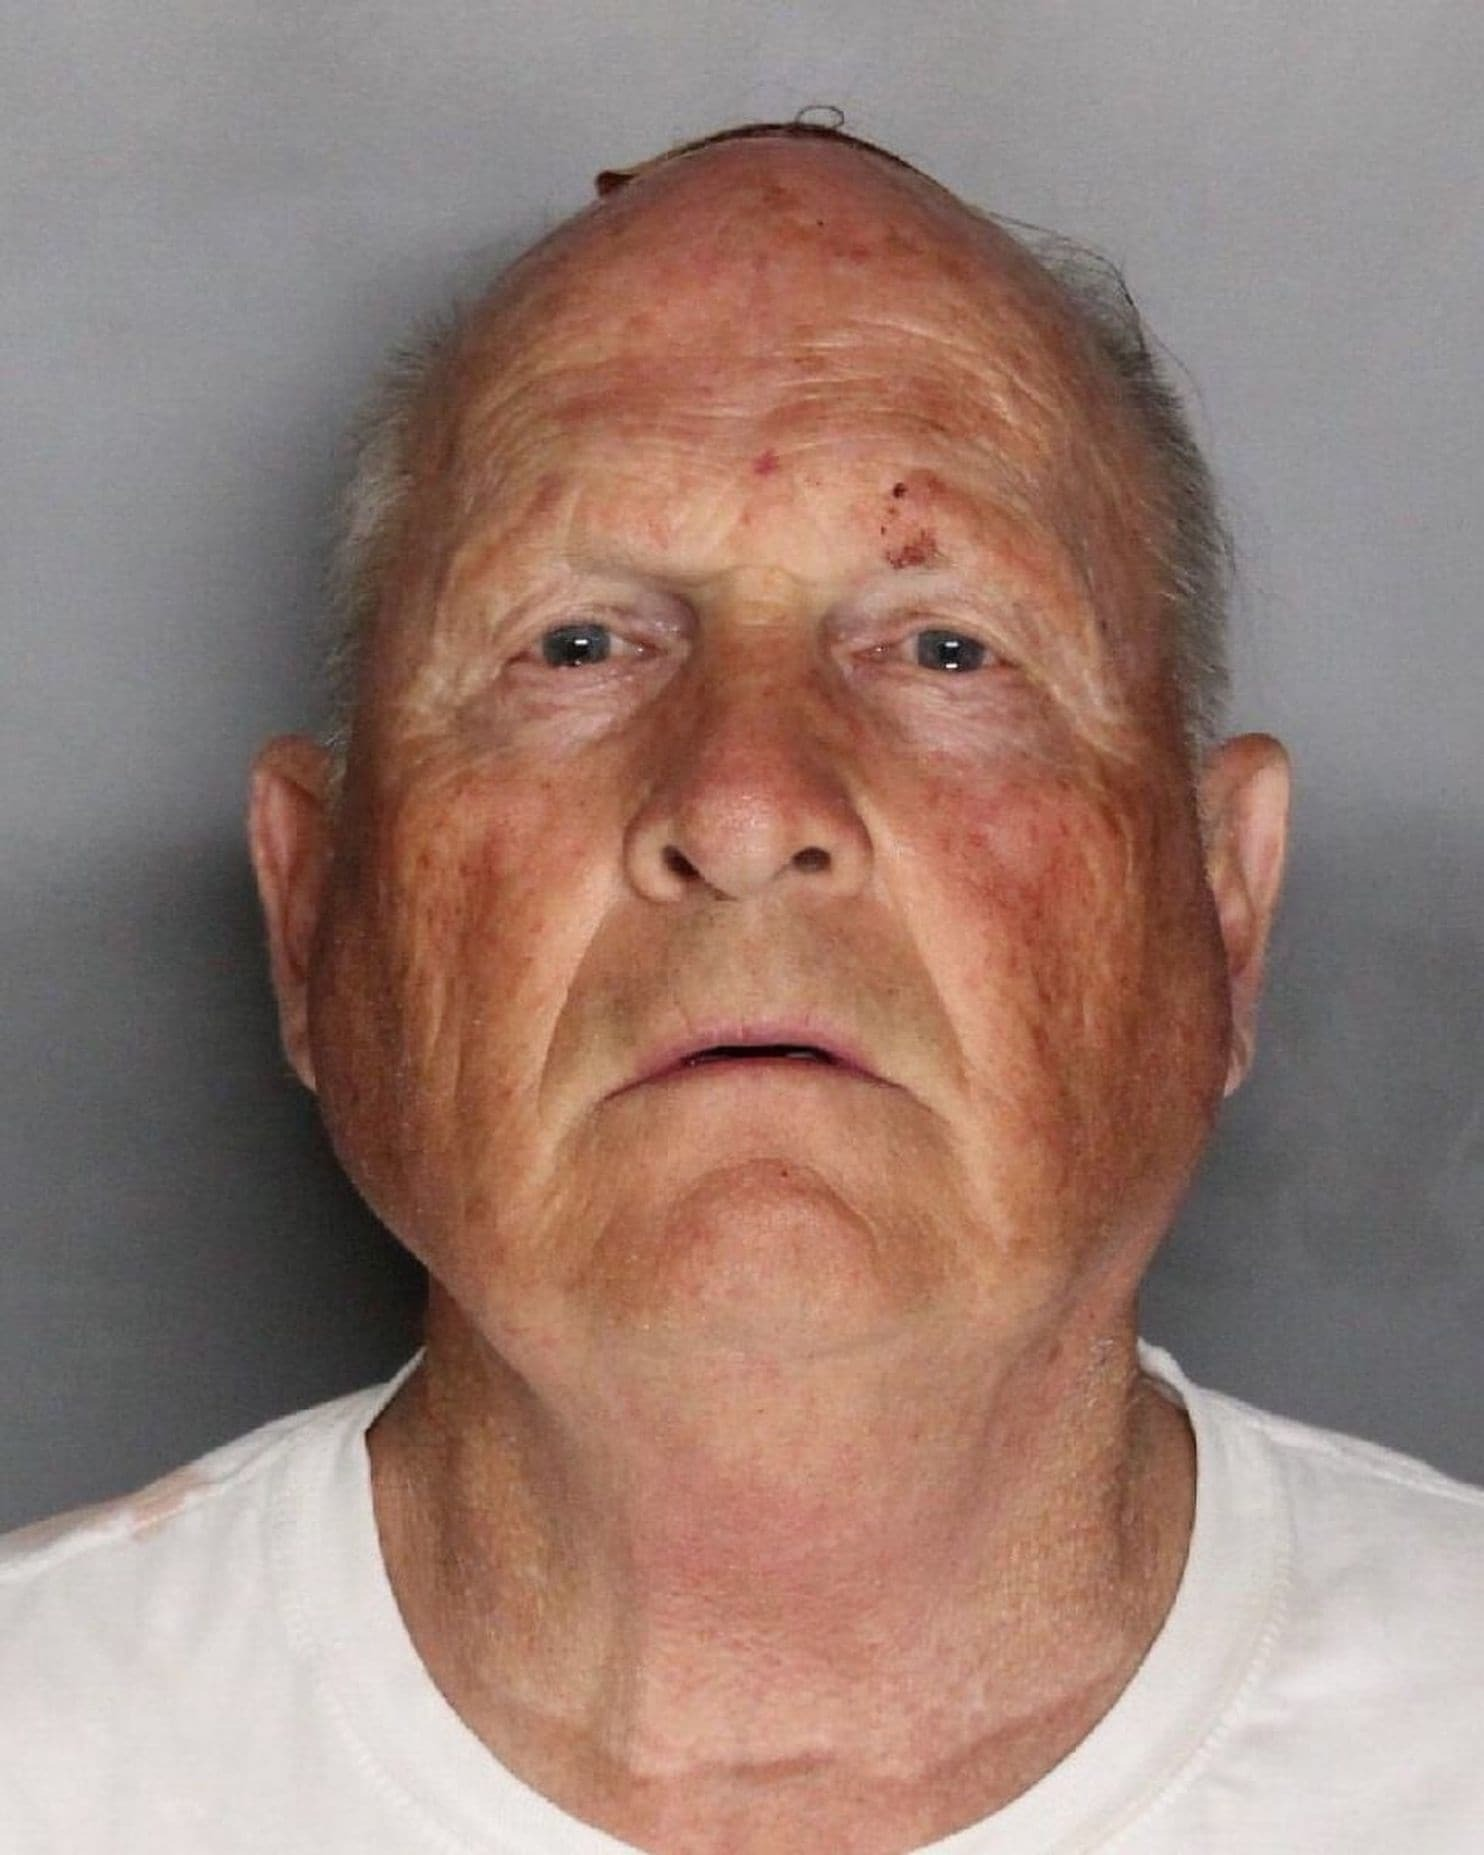 SACRAMENTO, CA - APRIL 25: In this handout provided by the Sacramento County Sheriff's Department, Joseph James DeAngelo, 72, is shown in his booking photo April 25, 2018 in Sacramento, California. DeAngelo was booked on two counts of murder, but police say he may be responsible for at least 12 murders and 45 rapes in a series of attacks that began more than 40 years ago, ending abruptly in 1986. (Photo by Sacramento County Sheriff's Department via Getty Images)